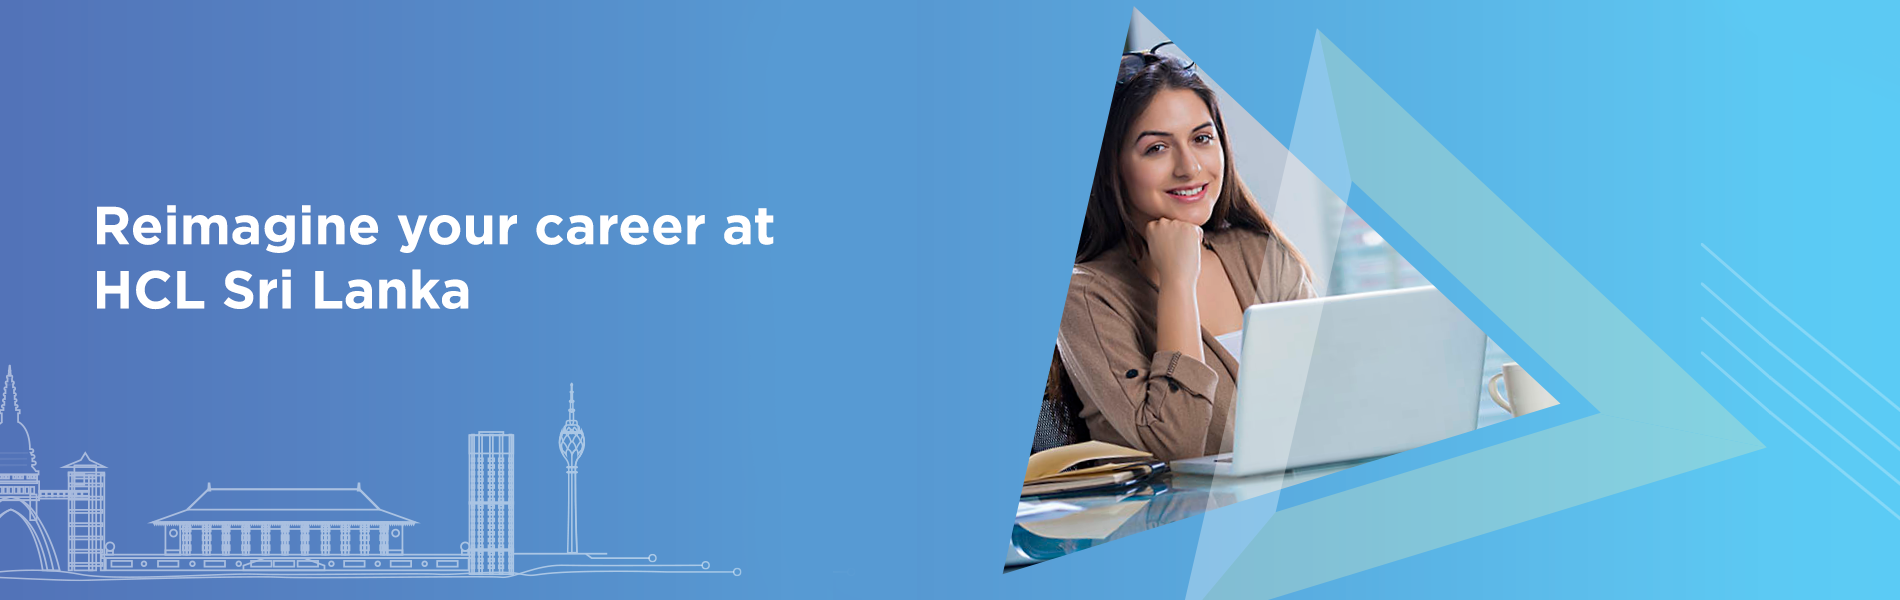 reimagine your career with hcl